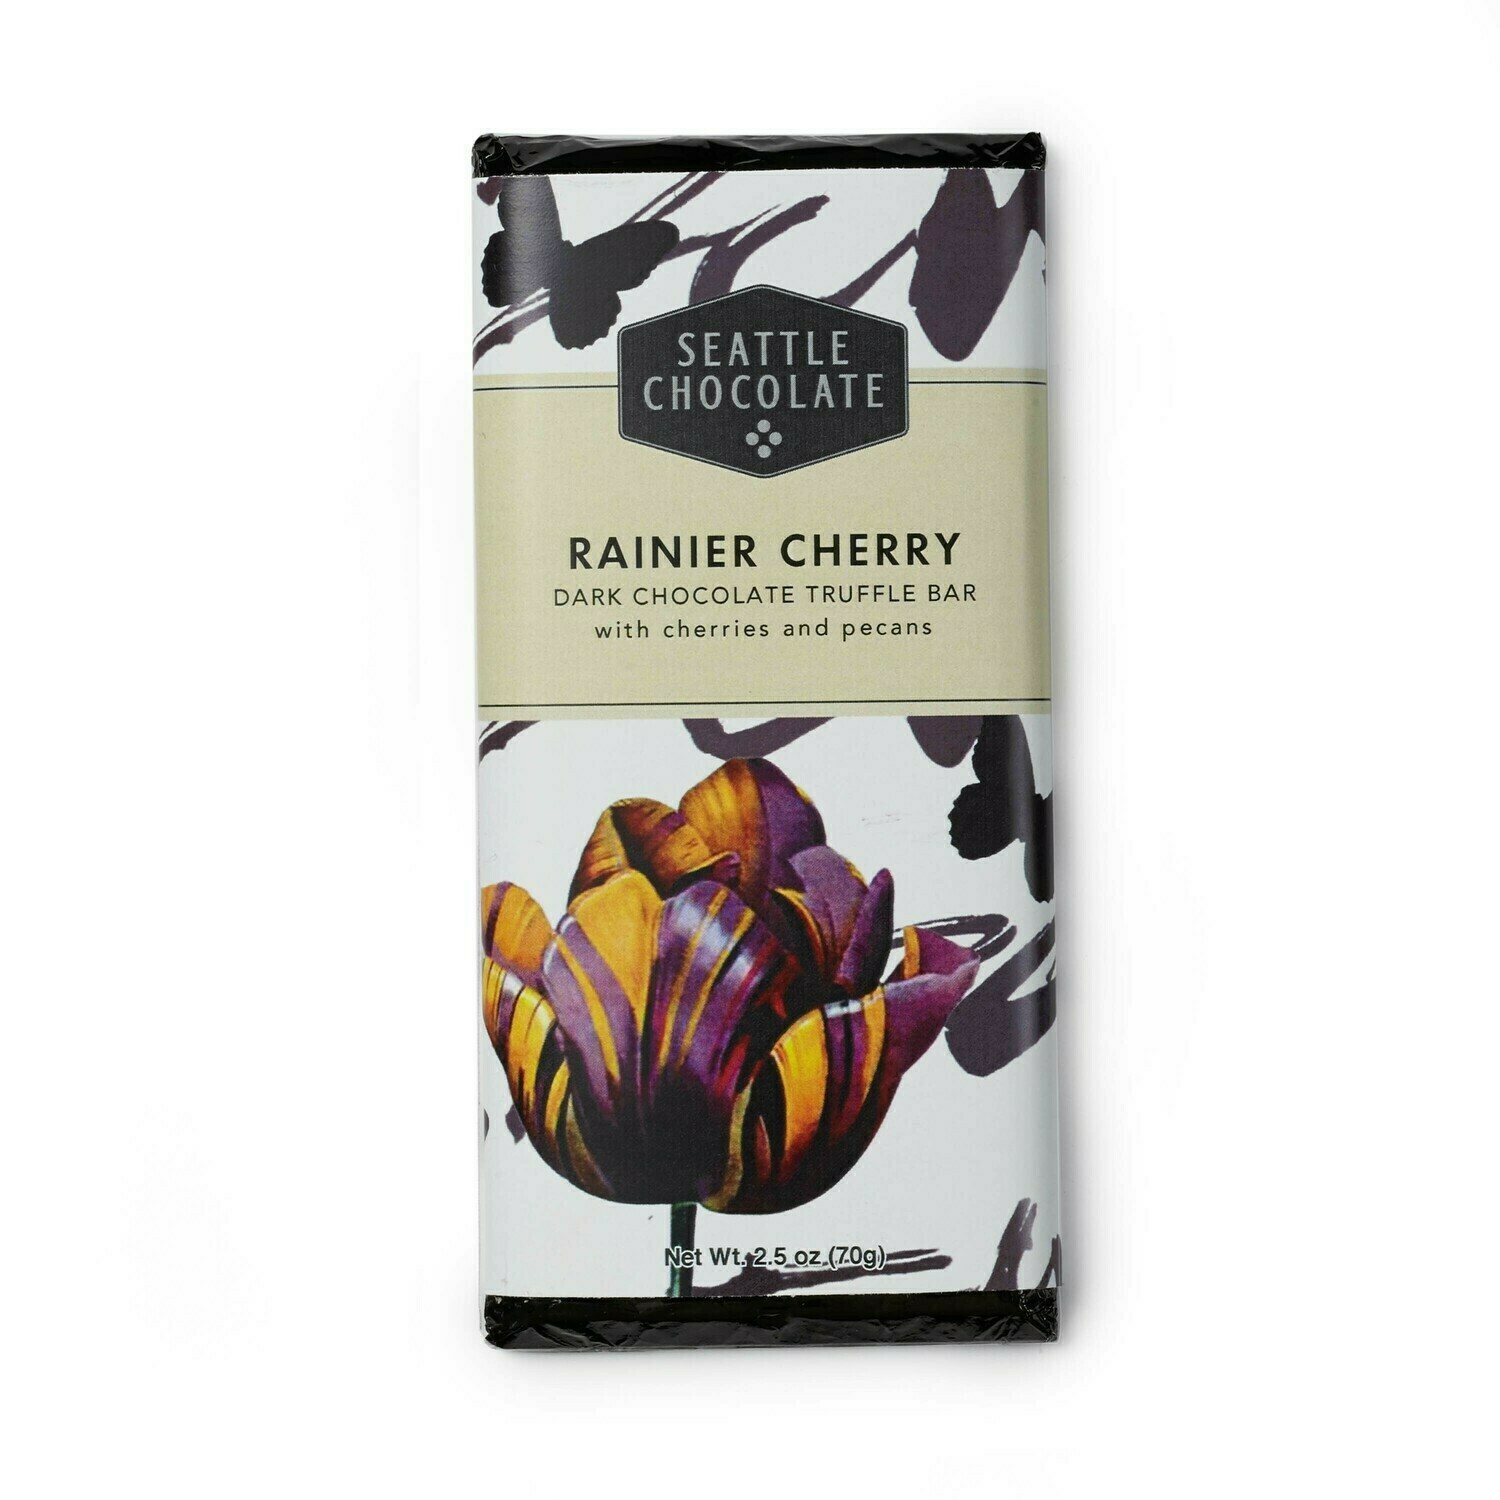 Seattle Chocolate Rainier Cherry Dark Chocolate Truffle Bar